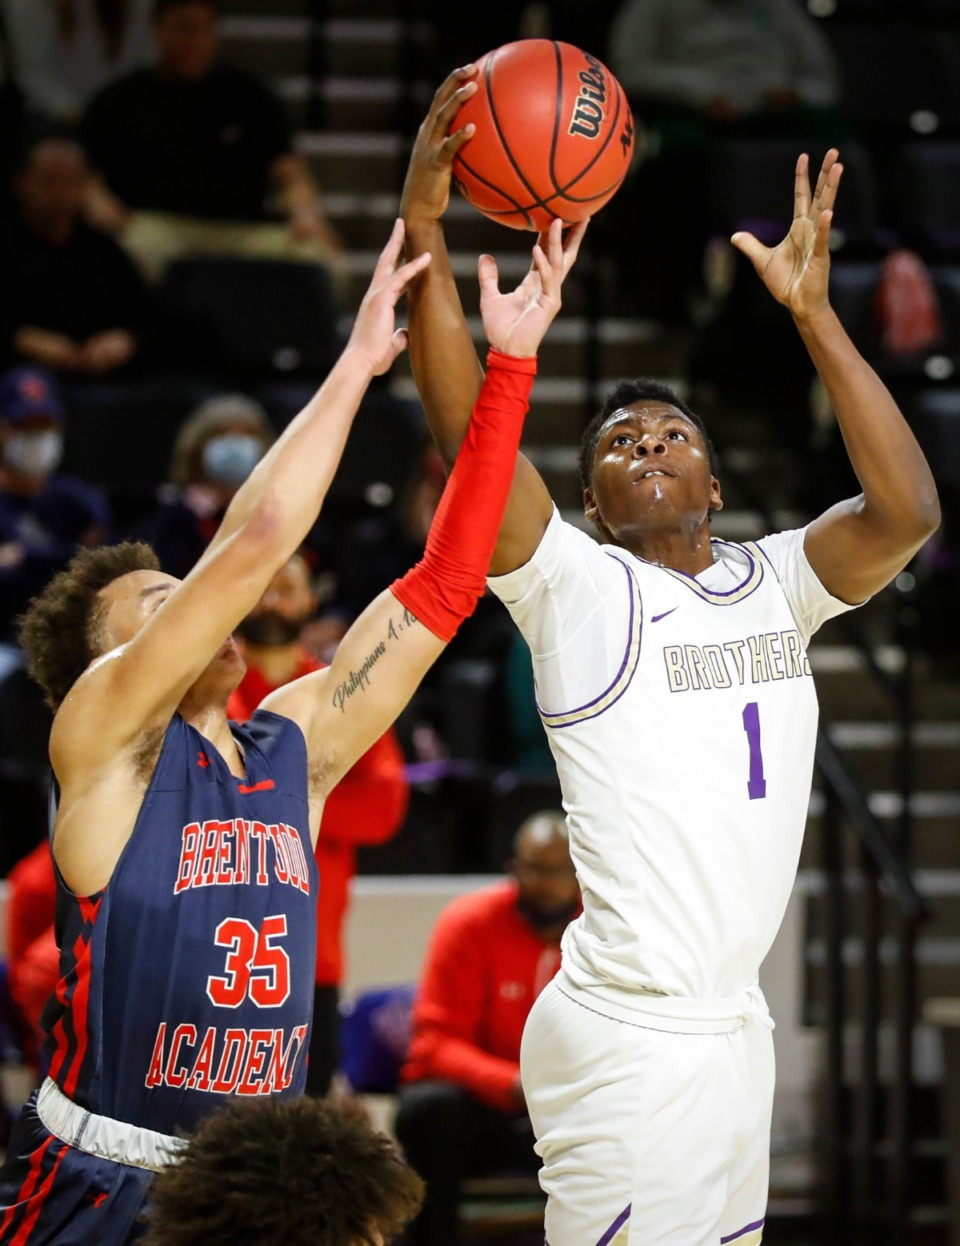 <strong>CBHS guard Chandler Jackson (right) grabs a rebound from Brentwood Academy&rsquo;s DJ Senter (left) in the Division II Class AA semifinals game on Friday, March 5, 2021, in Cookeville.</strong> (Mark Weber/The Daily Memphian)